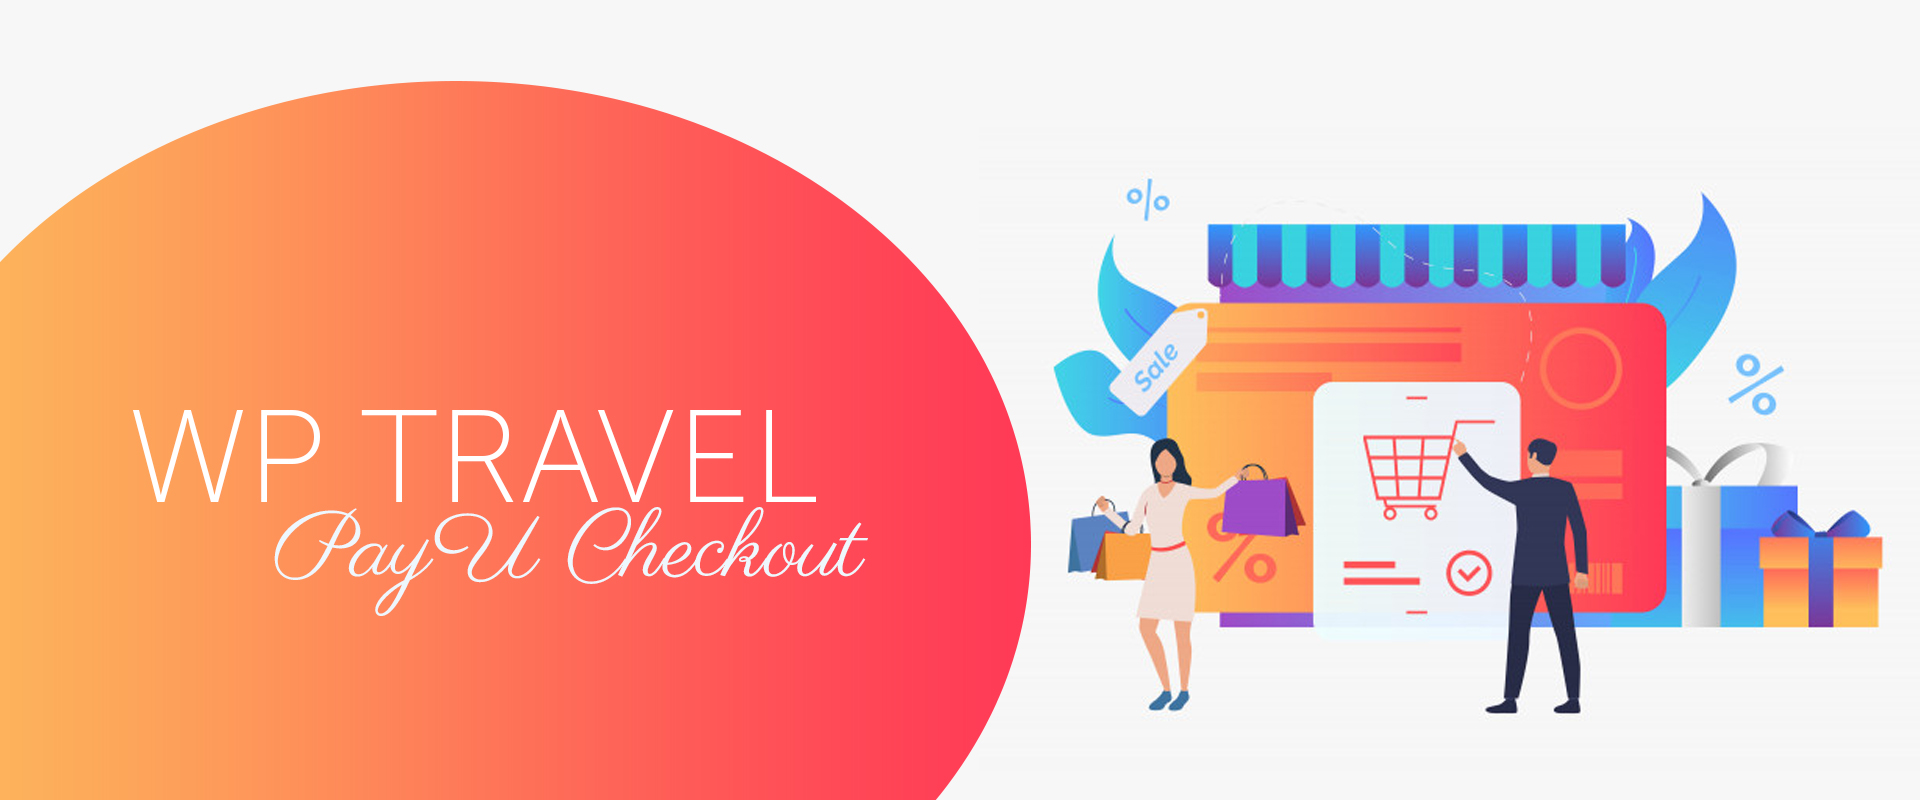 WP Travel PayU Checkout